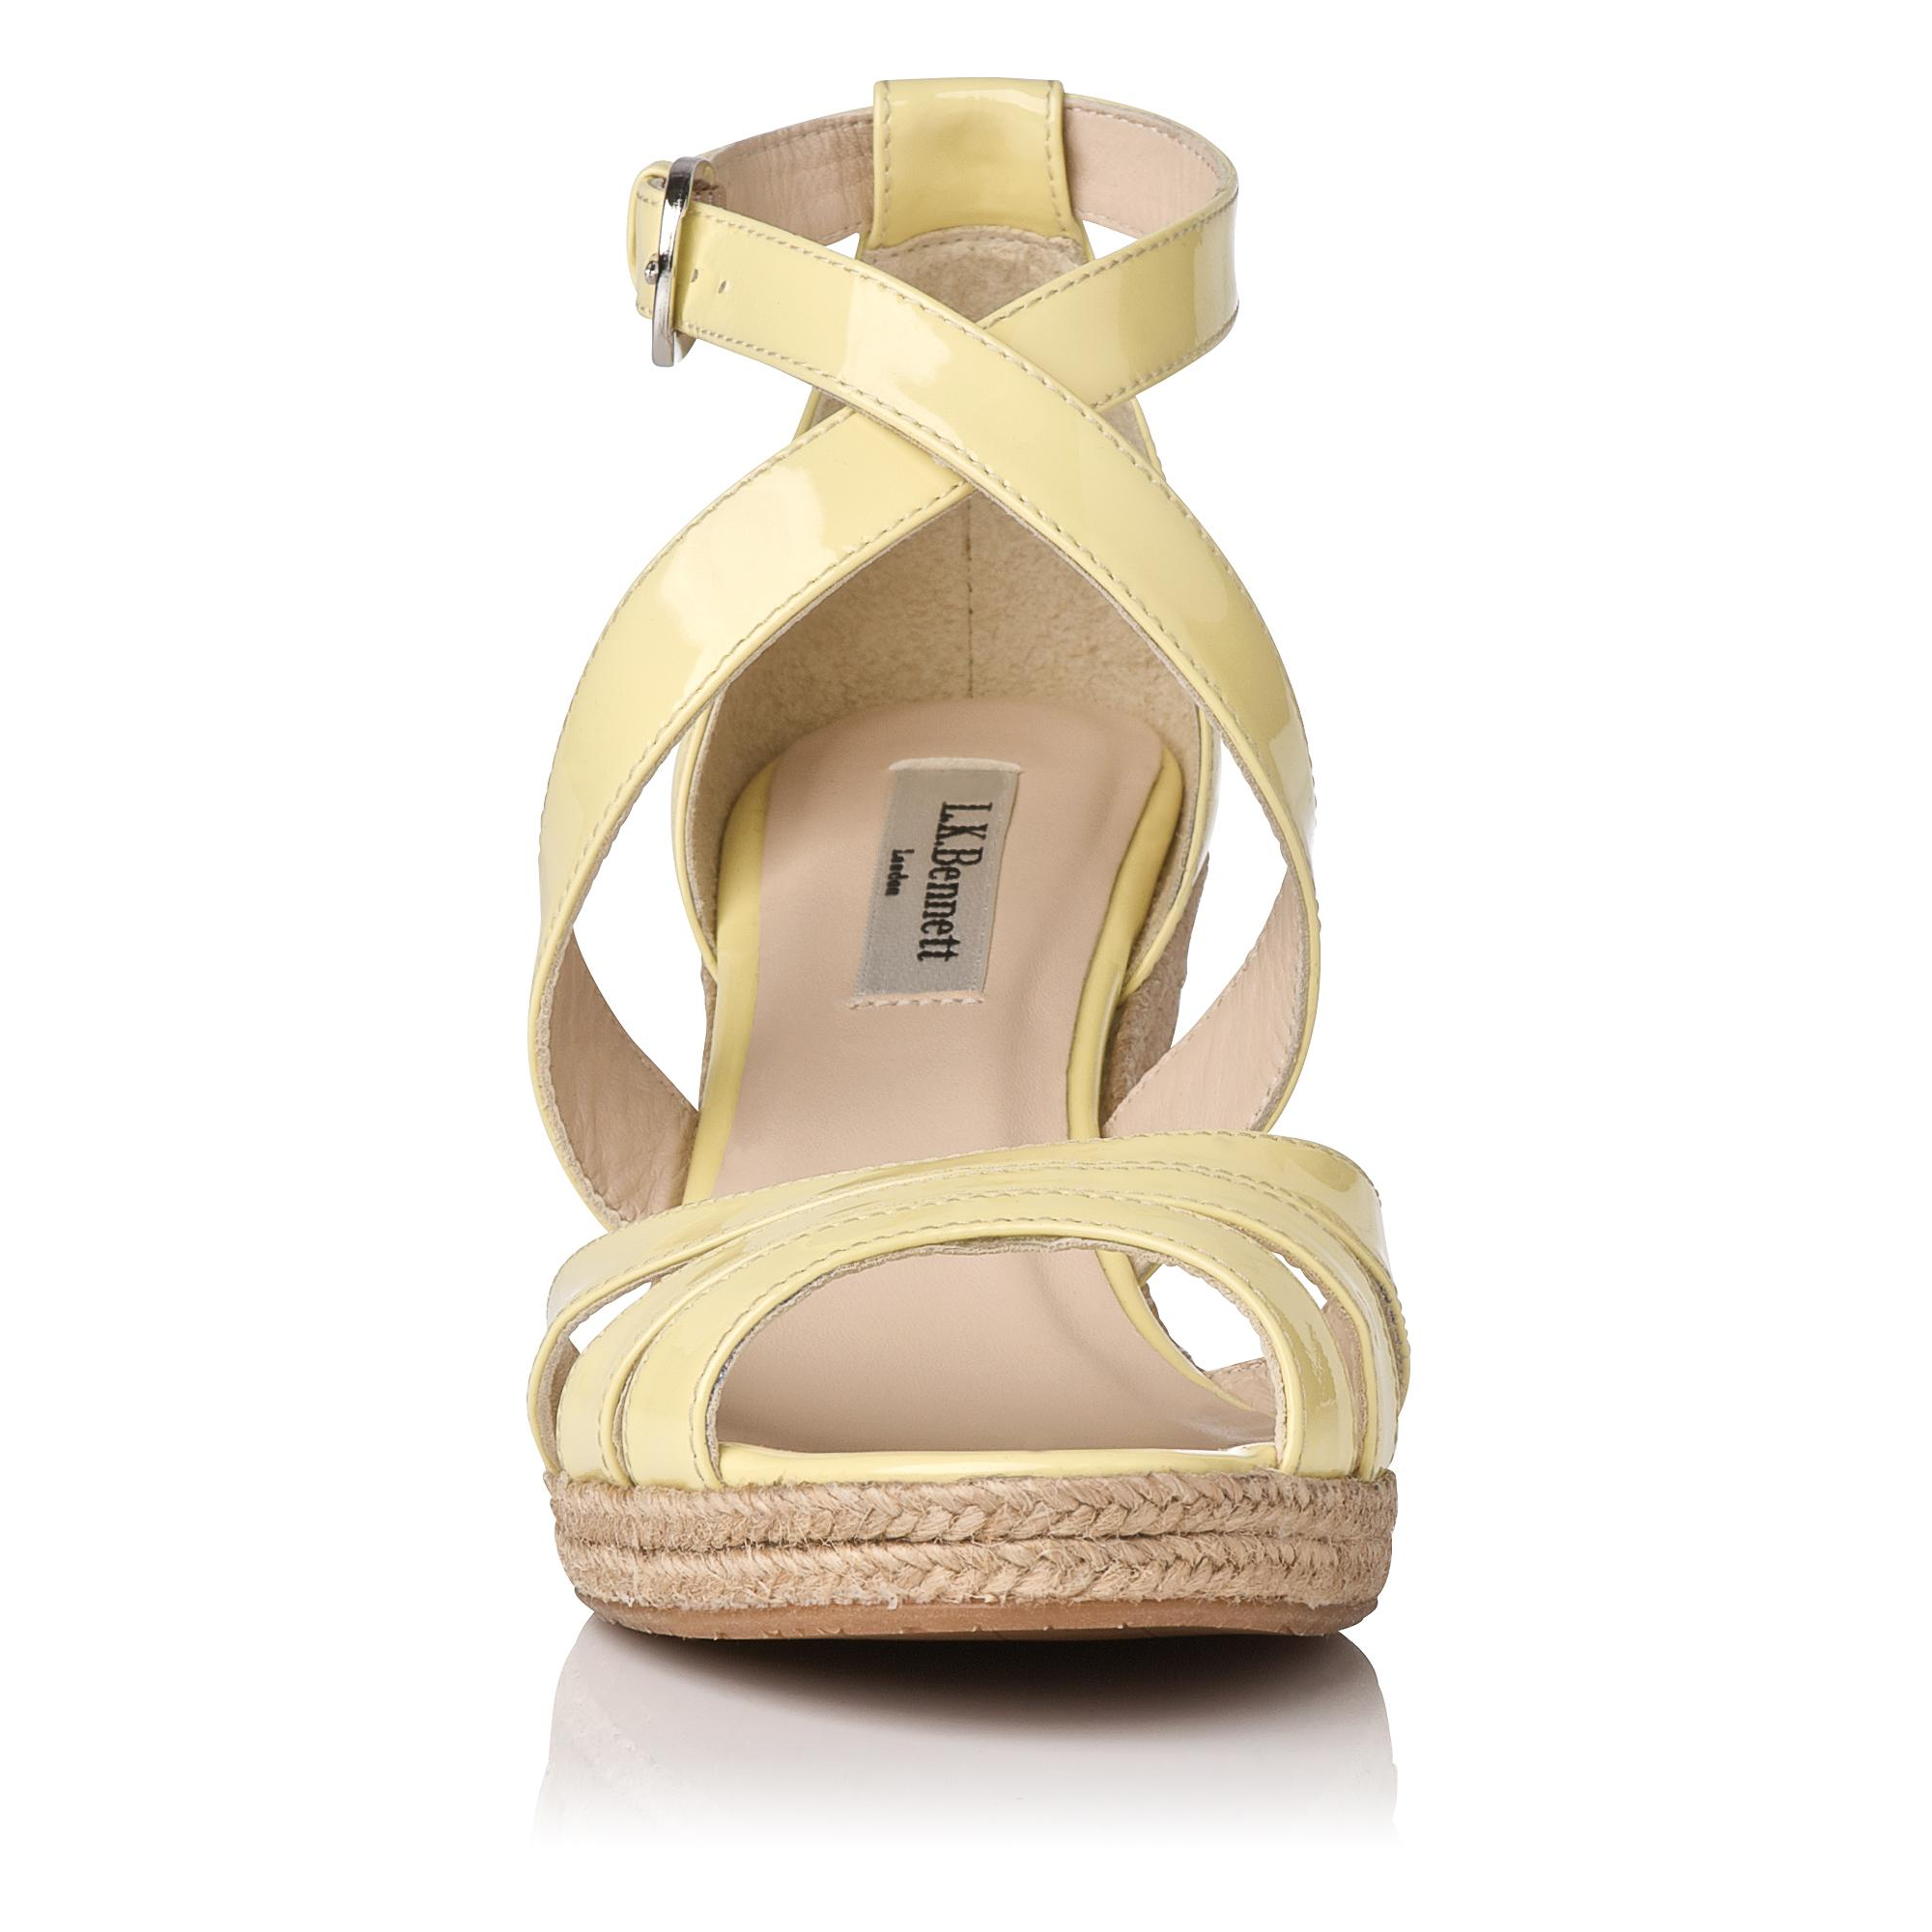 bb47fdcf112 ... Sandals  Priya Leather Espadrille Wedge. Tap to zoom